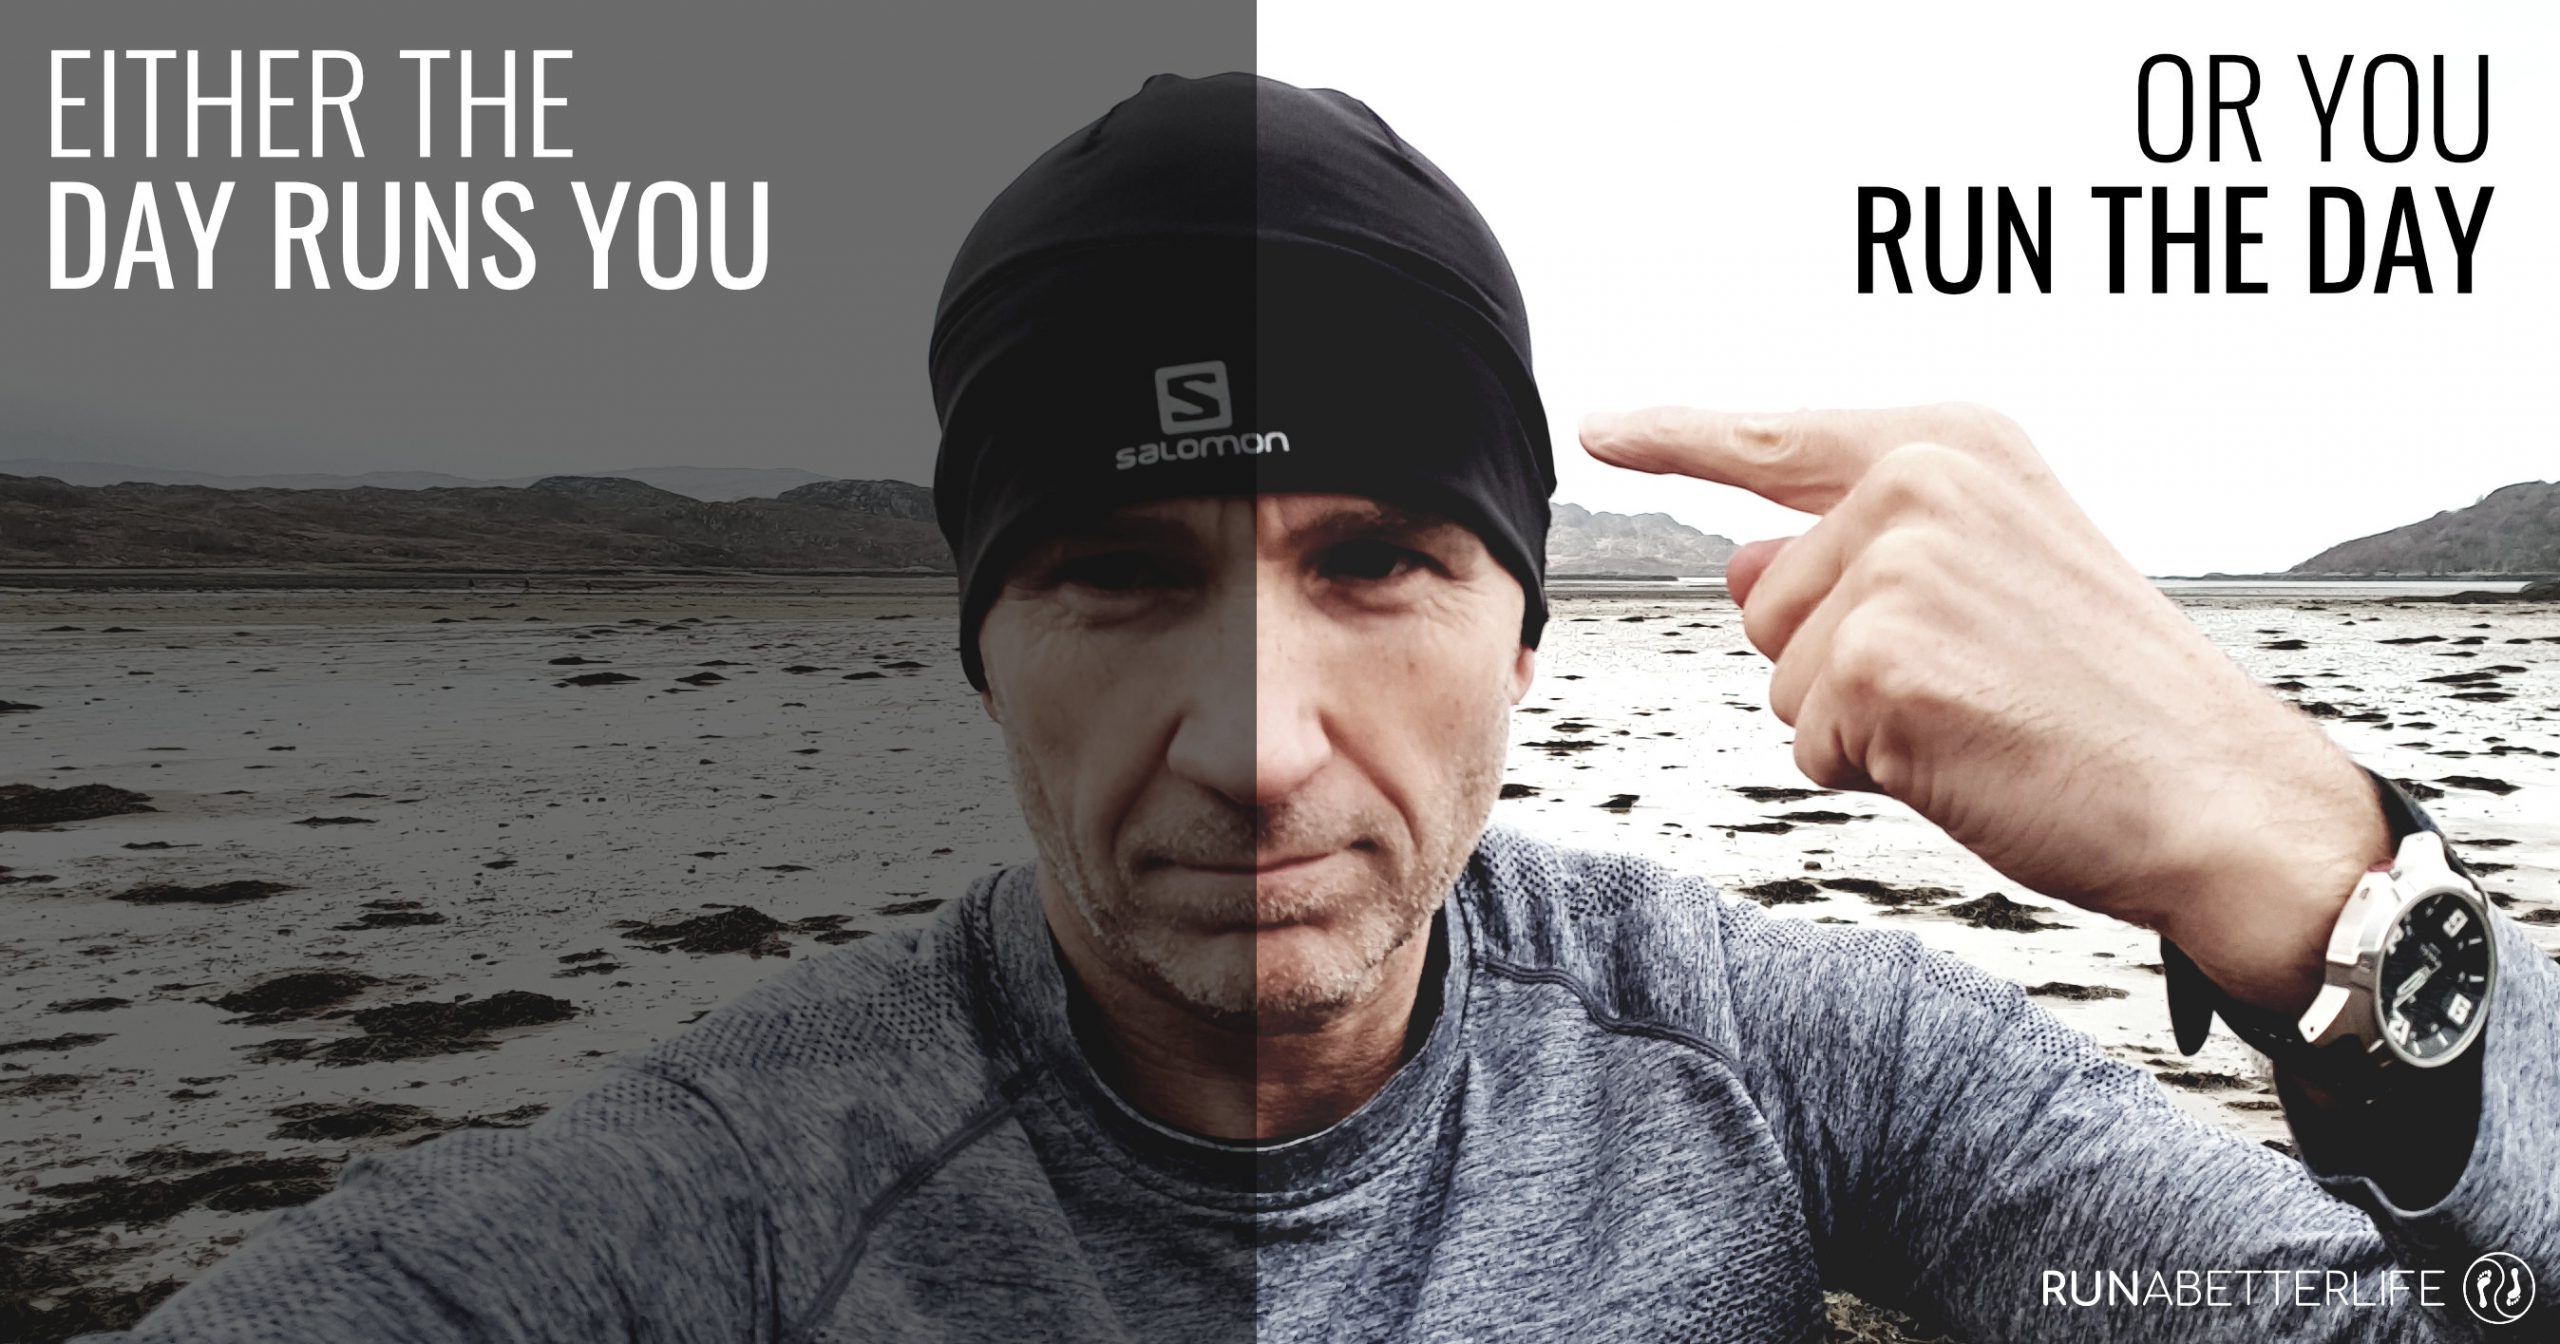 James Eastwood (runabetterlife.com) pointing to a runner's brain